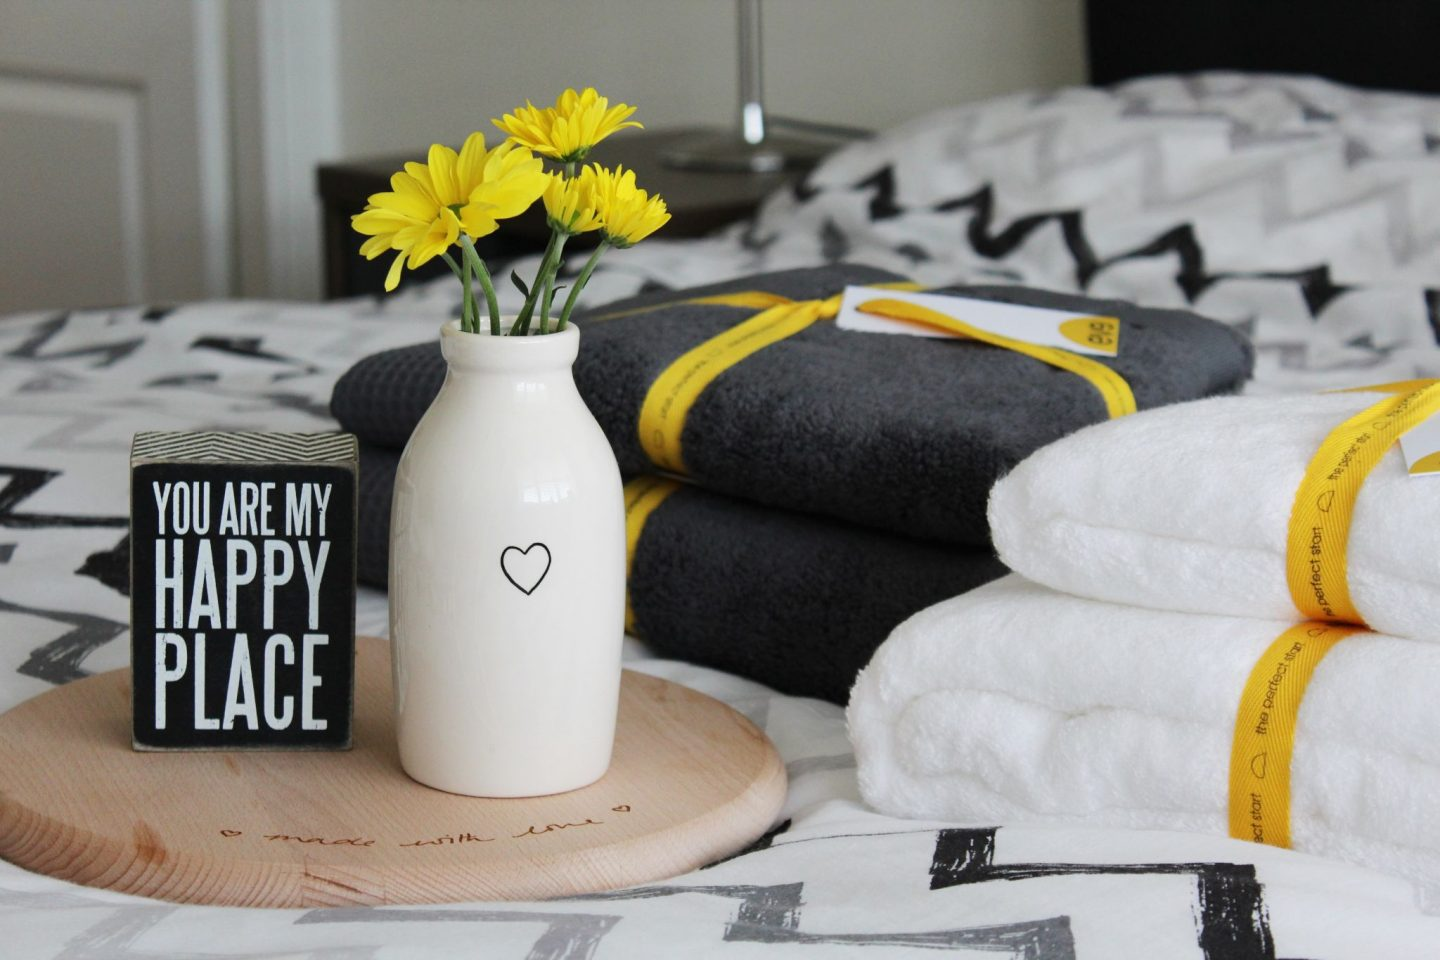 eve sleep, eve mattress towels review - Miel and Mint blog